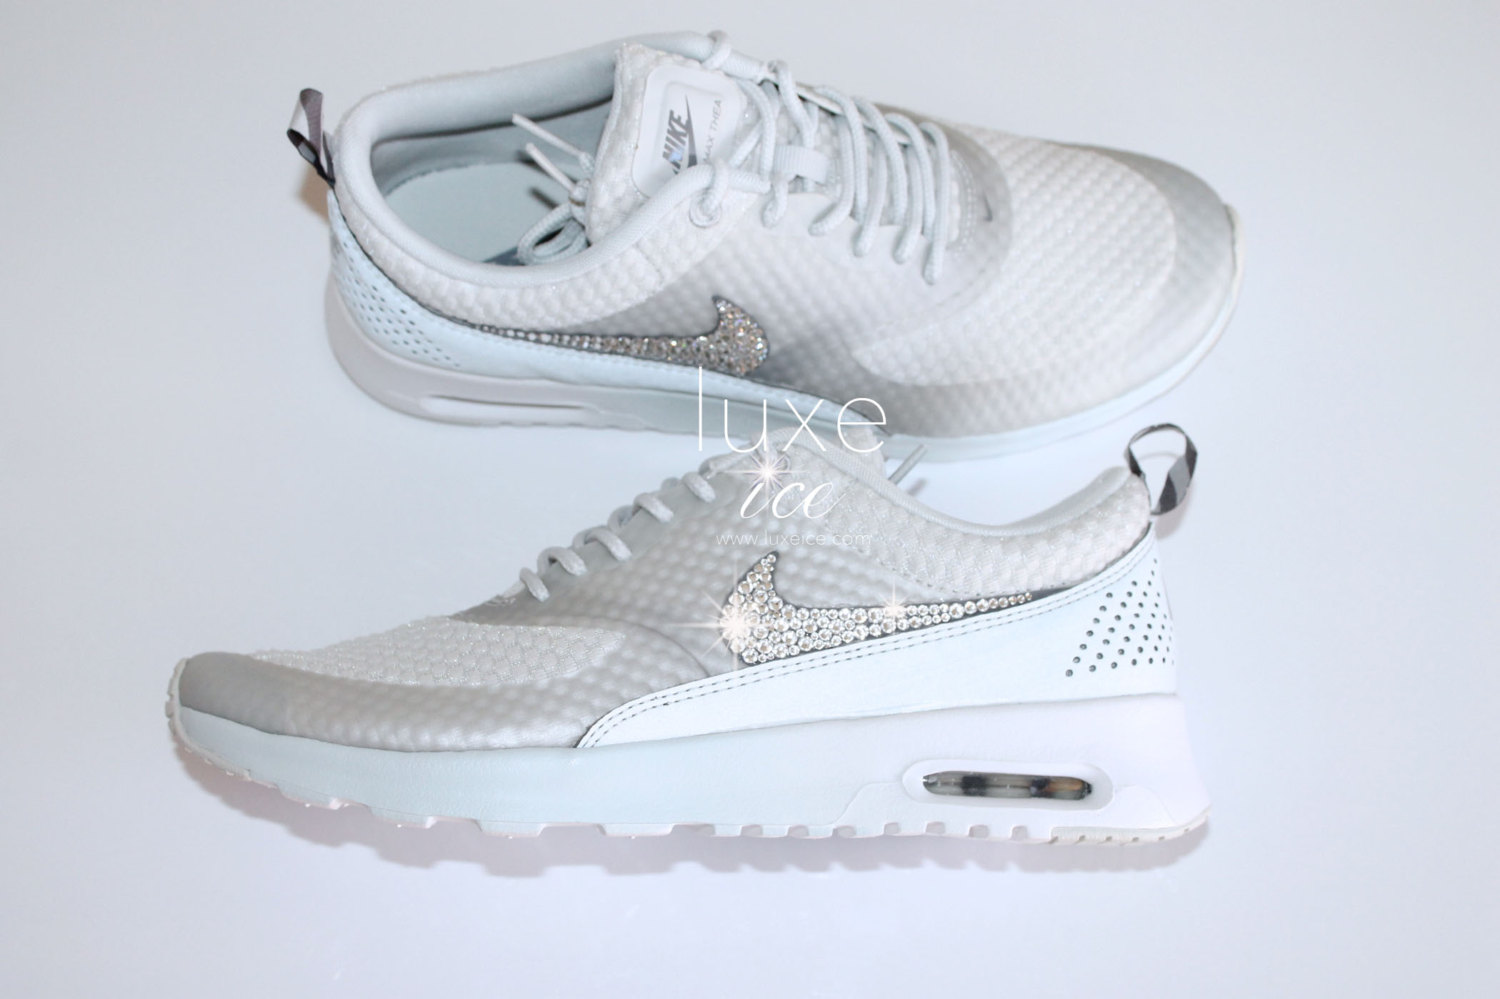 nike air max thea premium w swarovski kristalle detail. Black Bedroom Furniture Sets. Home Design Ideas